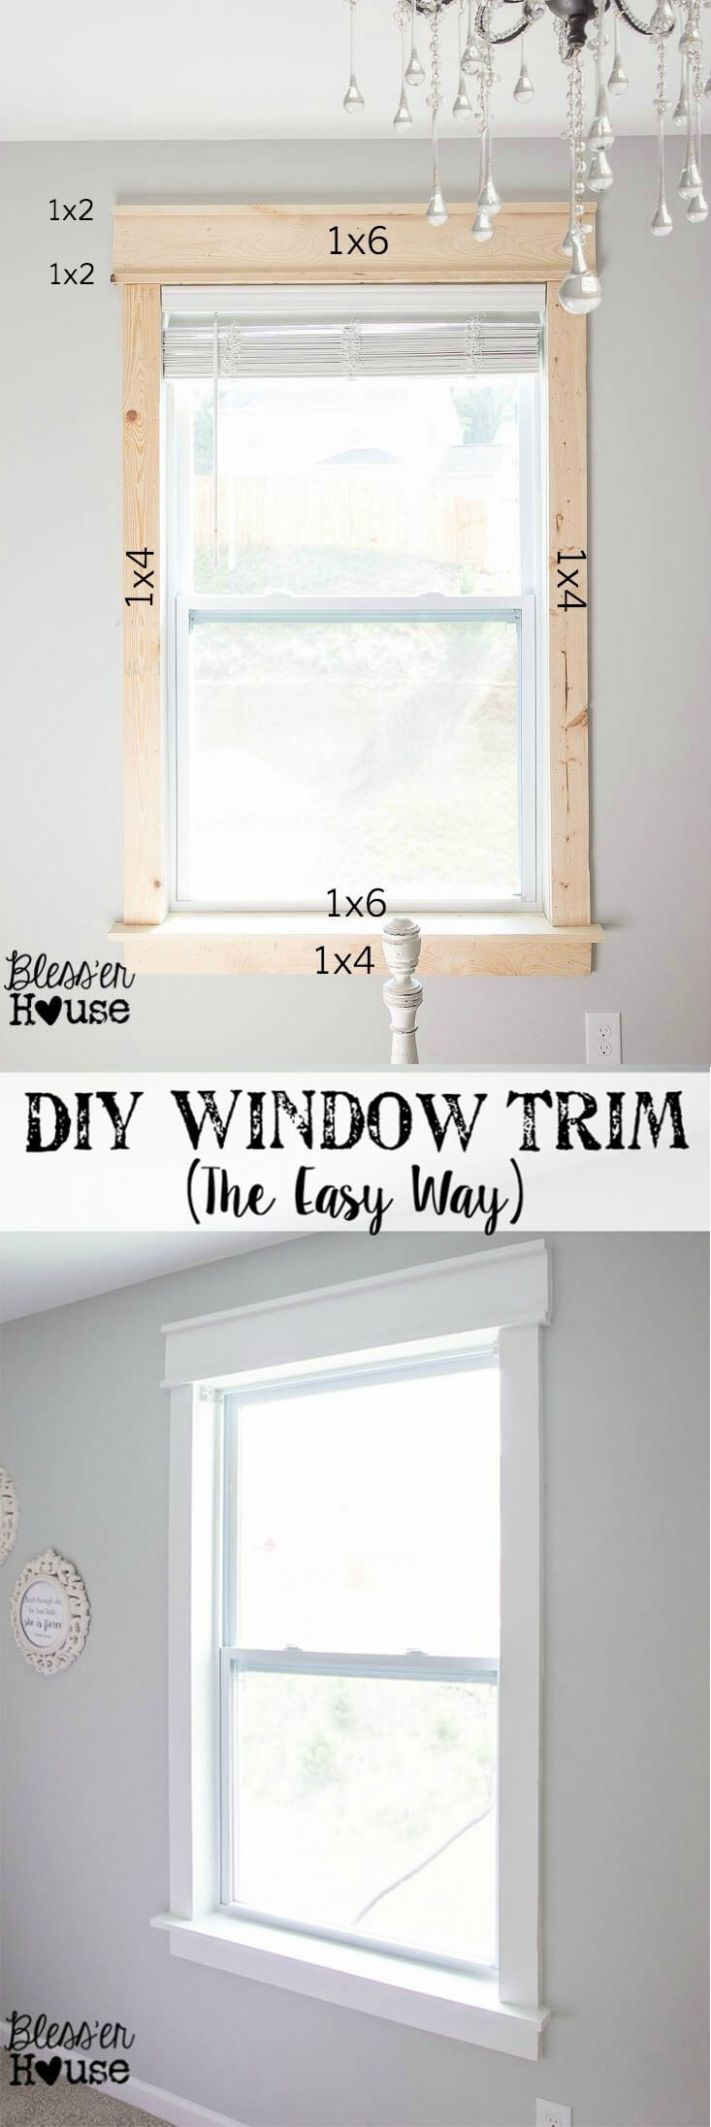 8 Best Molding Ideas and Designs for 8 - window molding ideas